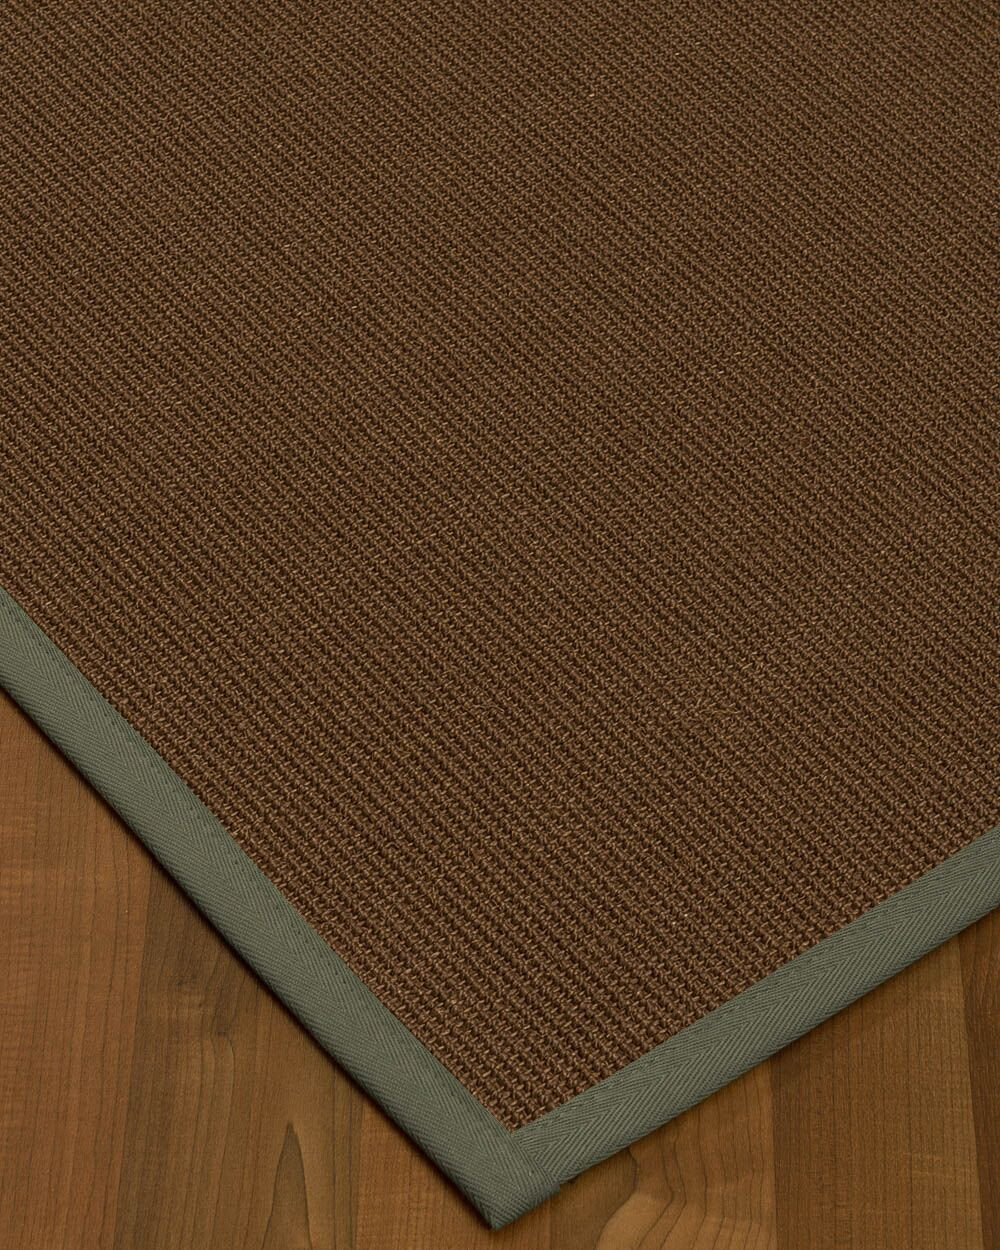 Heider Border Hand-Woven Brown/Gray Area Rug Rug Size: Rectangle 4' x 6', Rug Pad Included: Yes